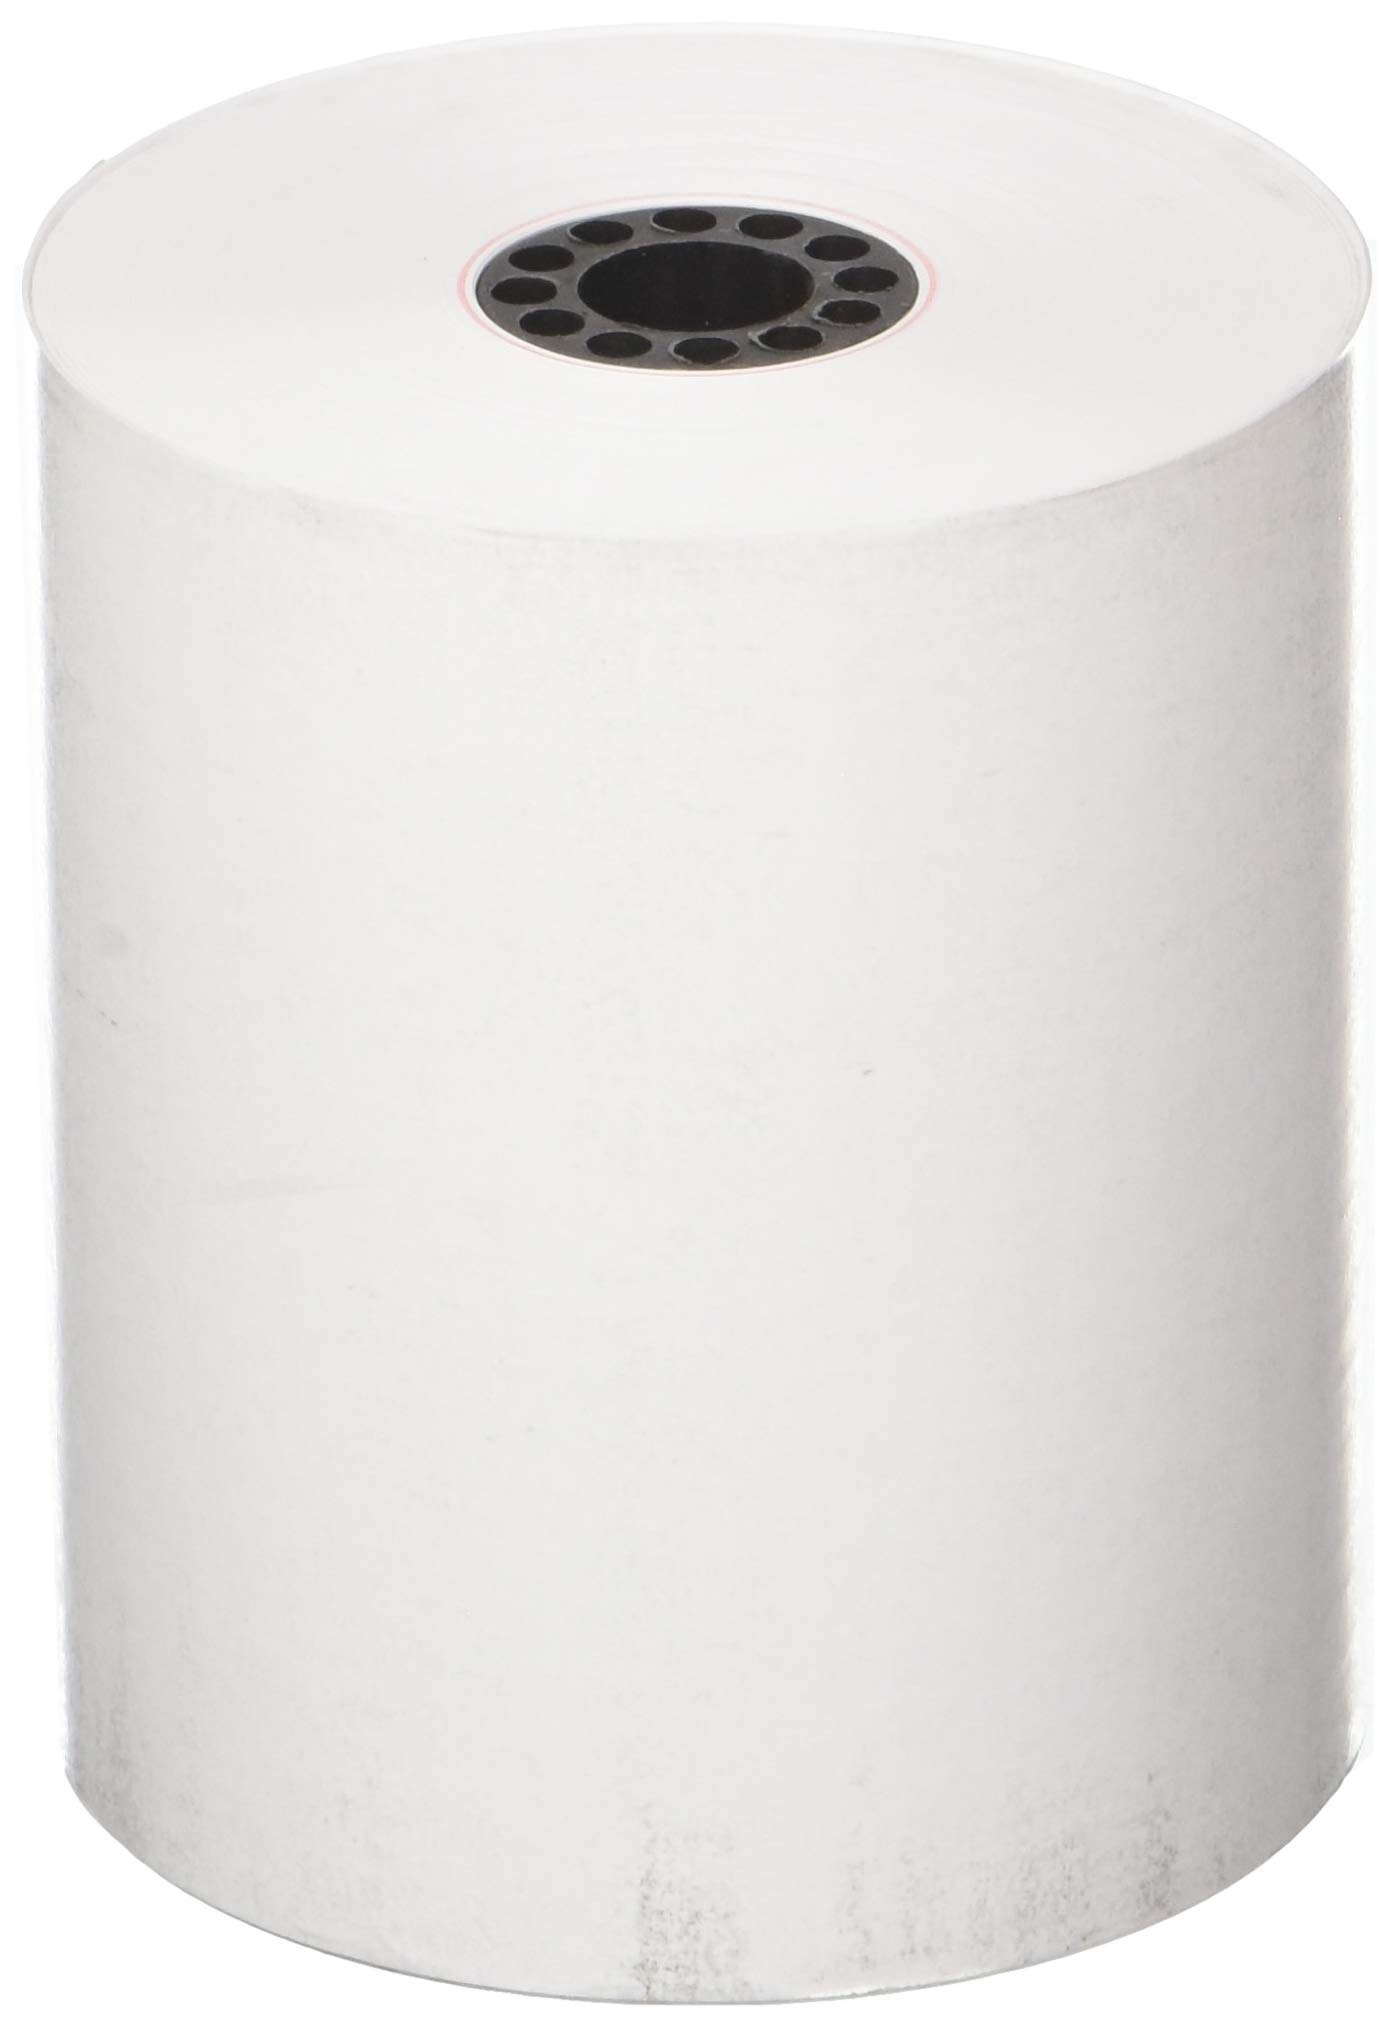 Sticiry 3 1/8 x 230' Thermal Paper Roll, For Cash Register (POS). Rolls MADE IN USA - BPA Free (32 Rolls) by Sticiry (Image #1)